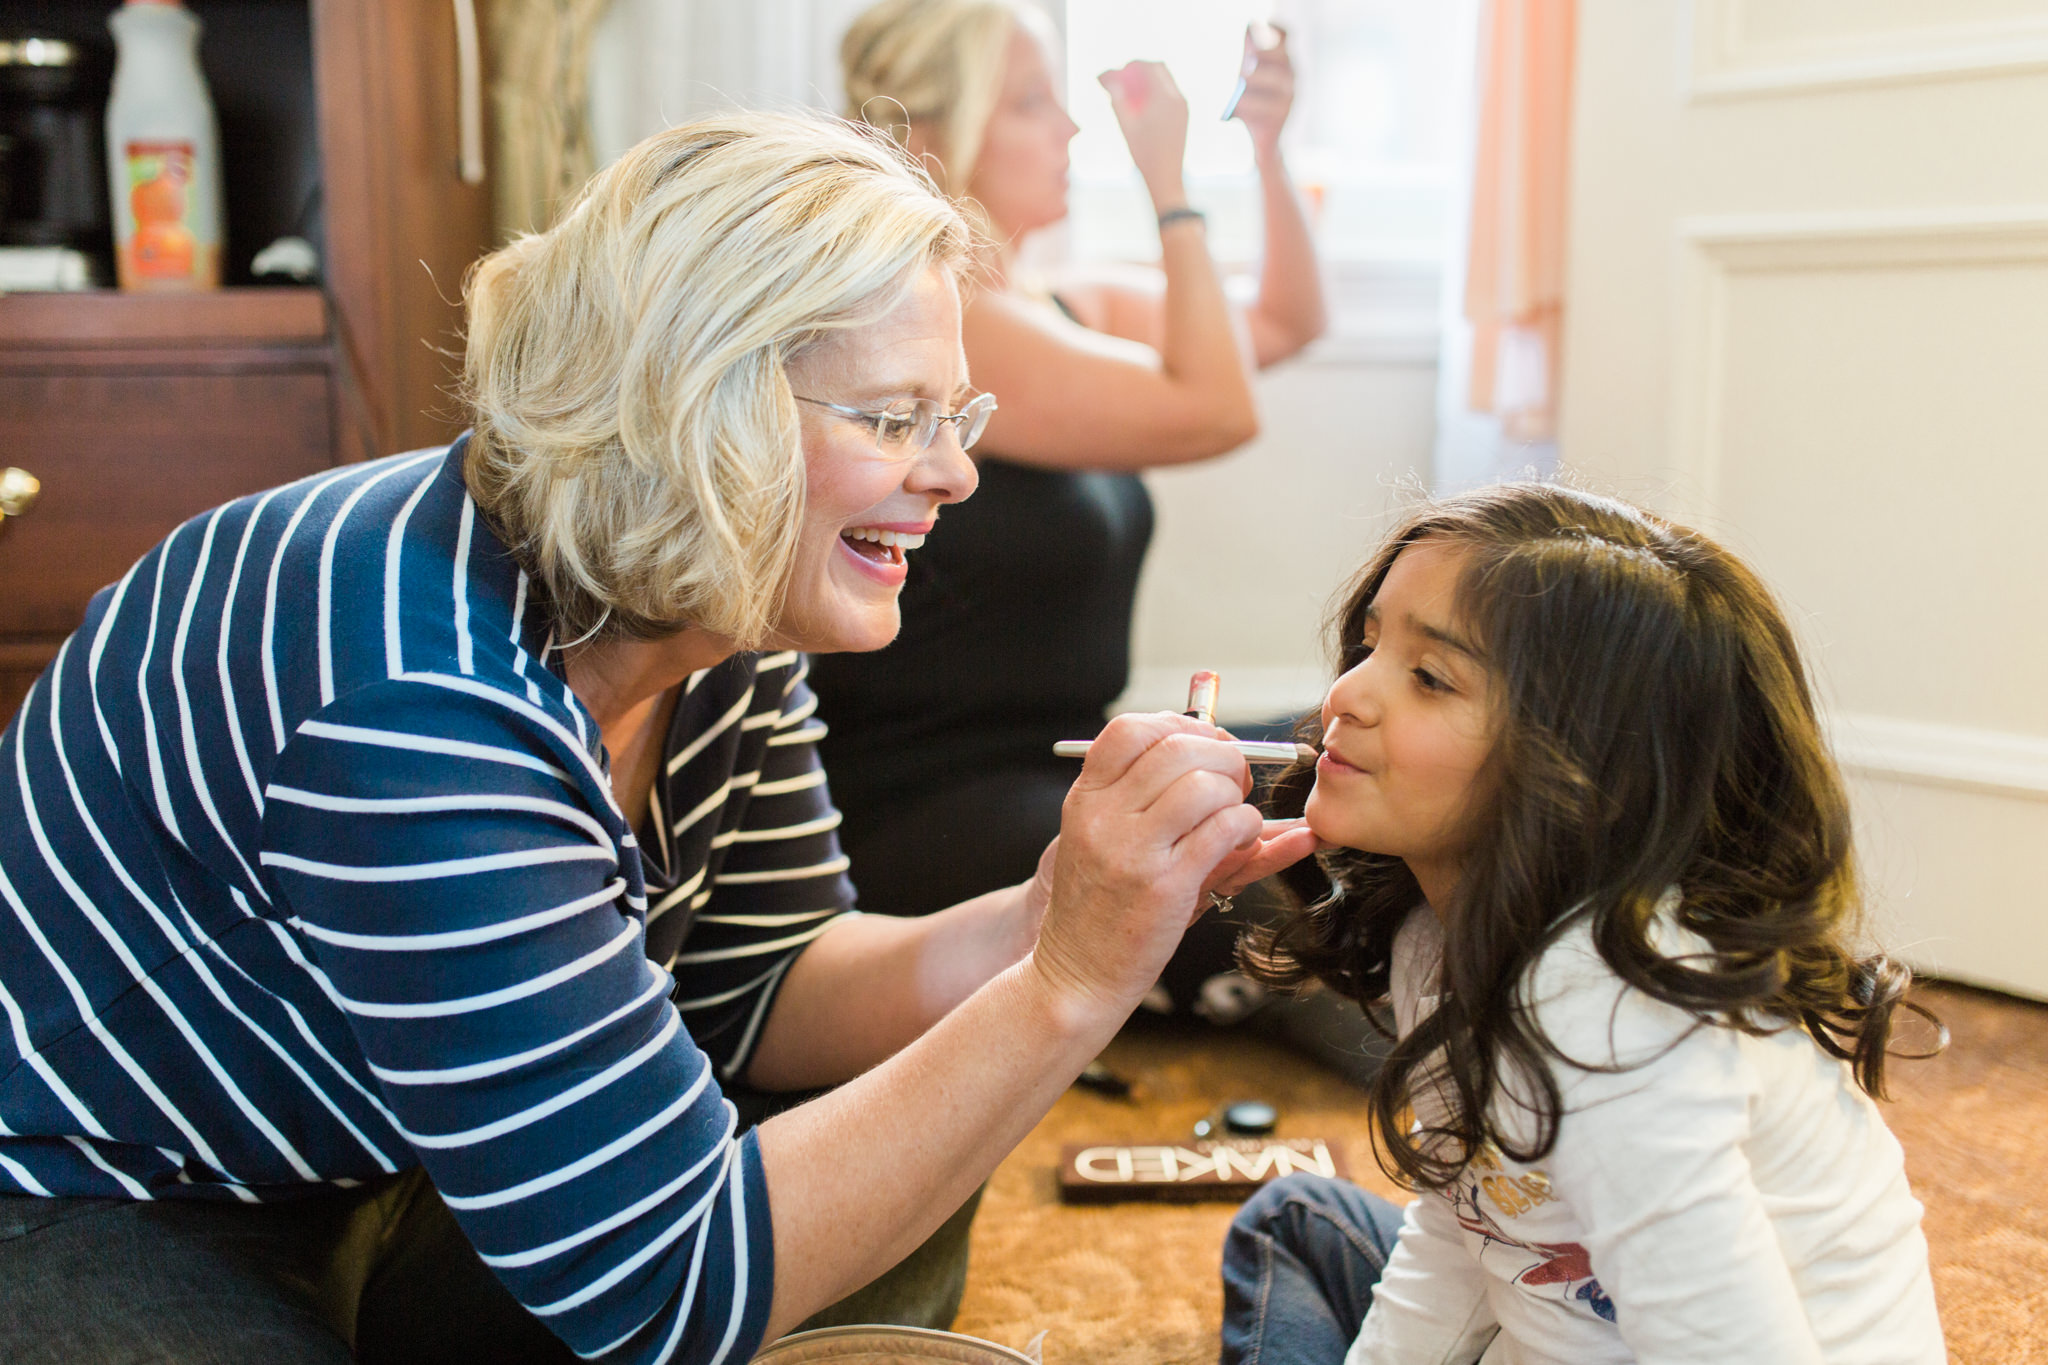 Mother of the bride putting lipstick on her daughter